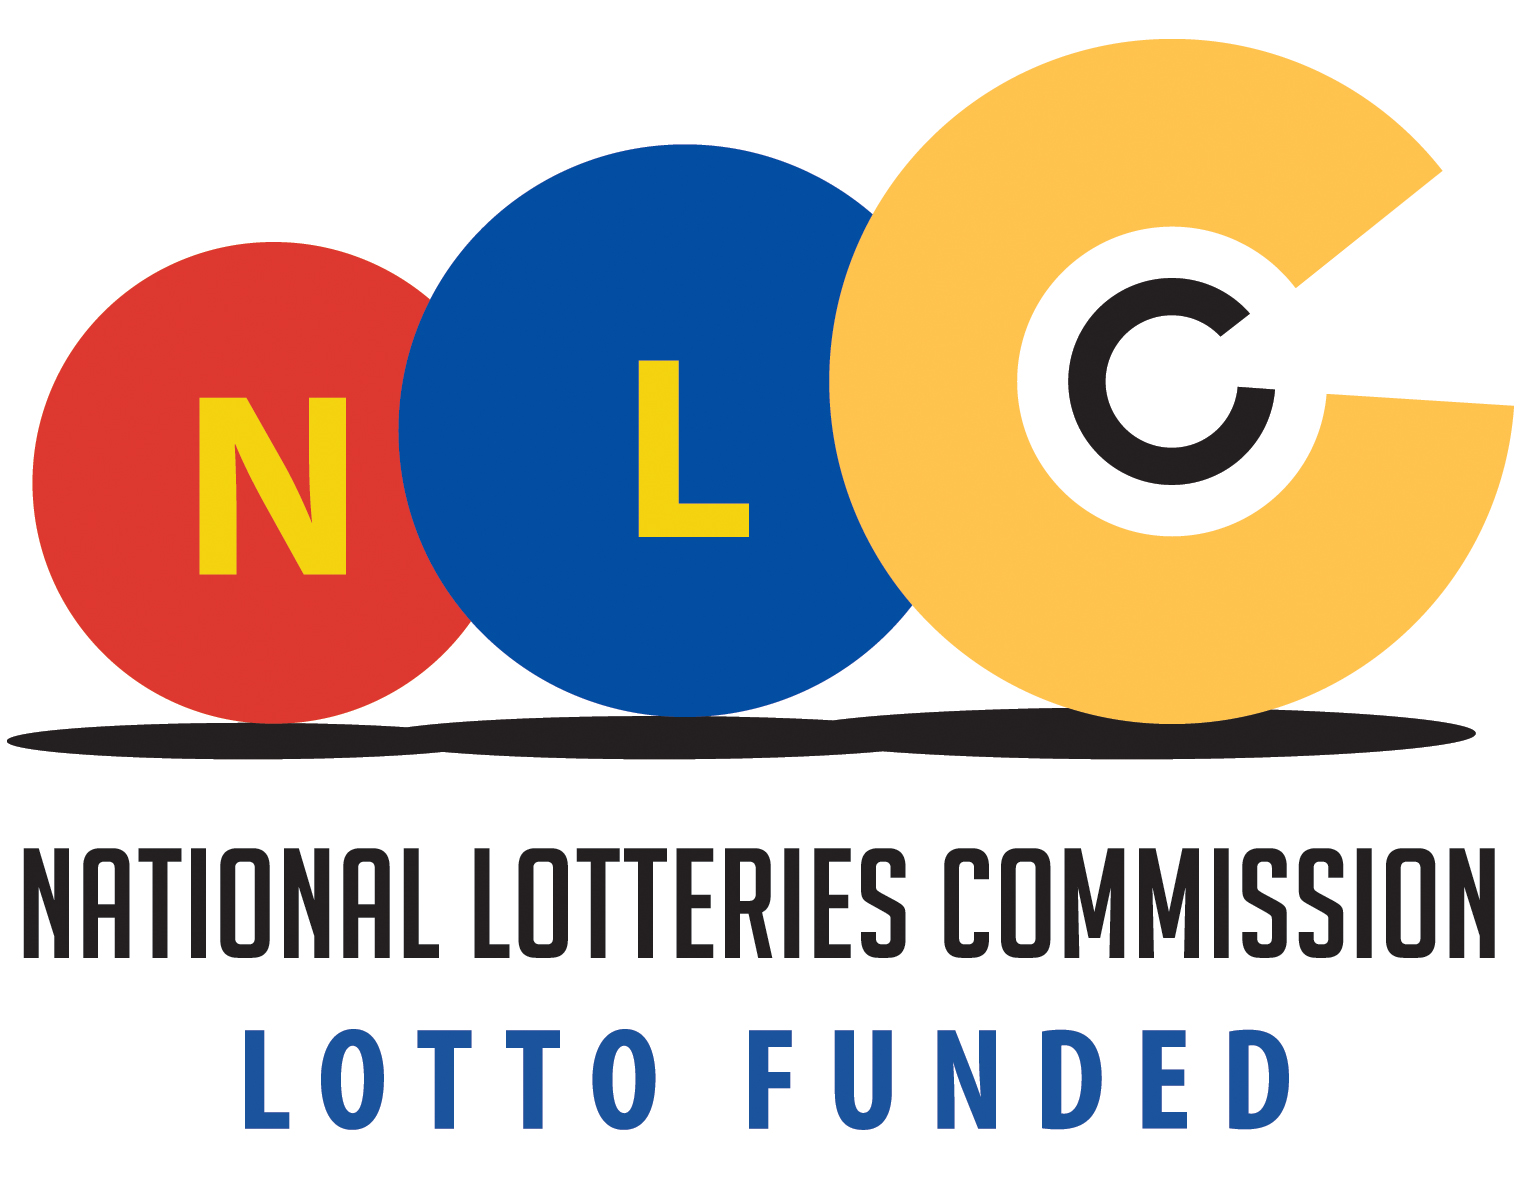 NLC Funded